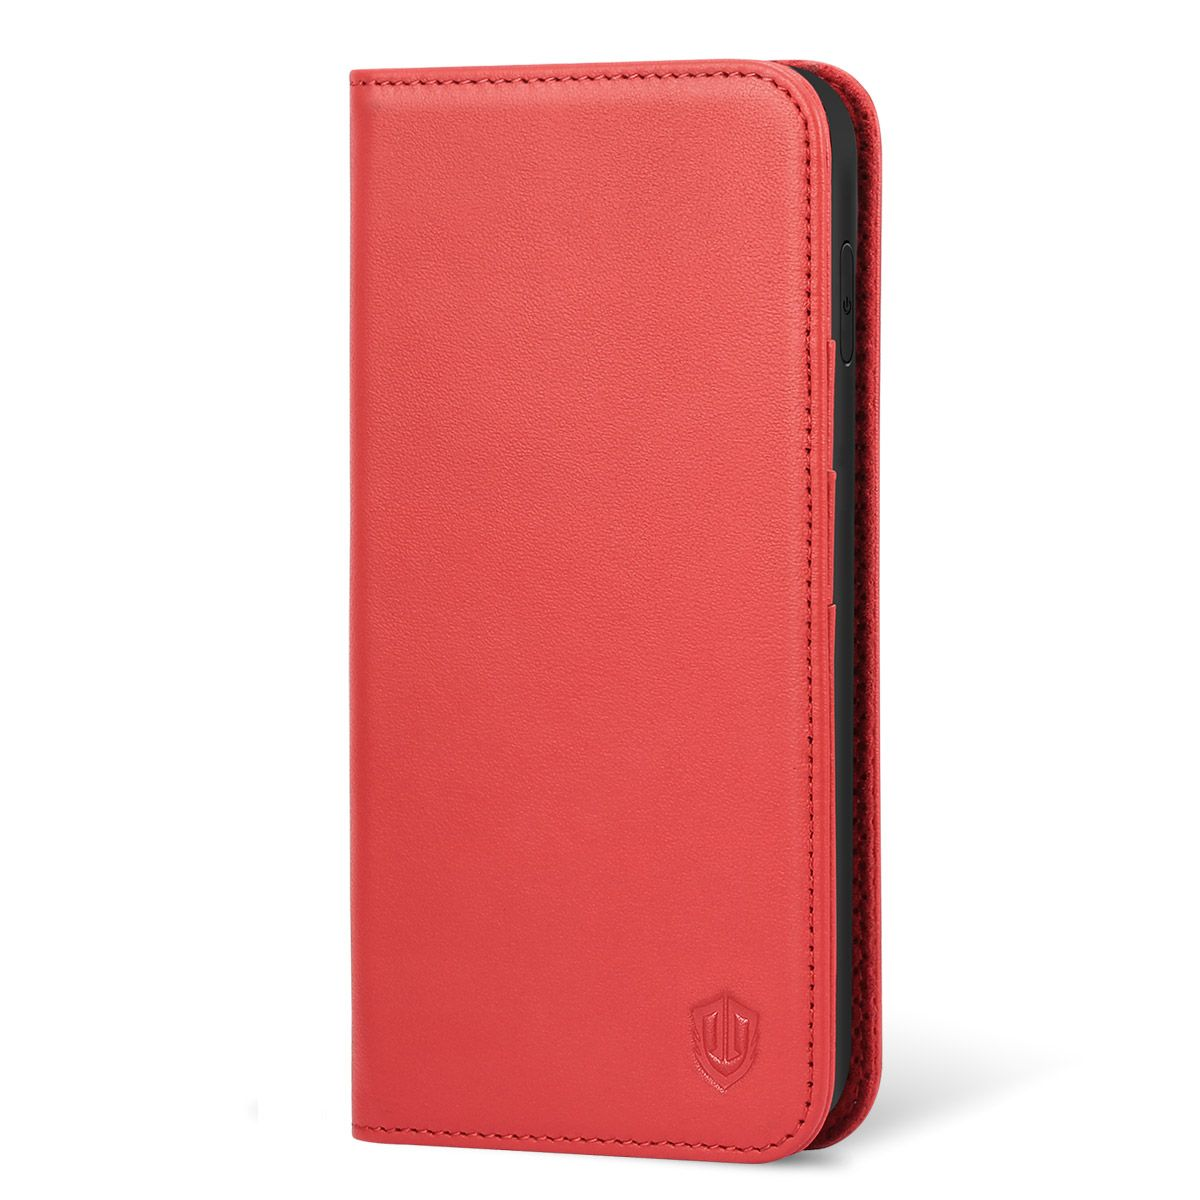 iphone xr case red leather